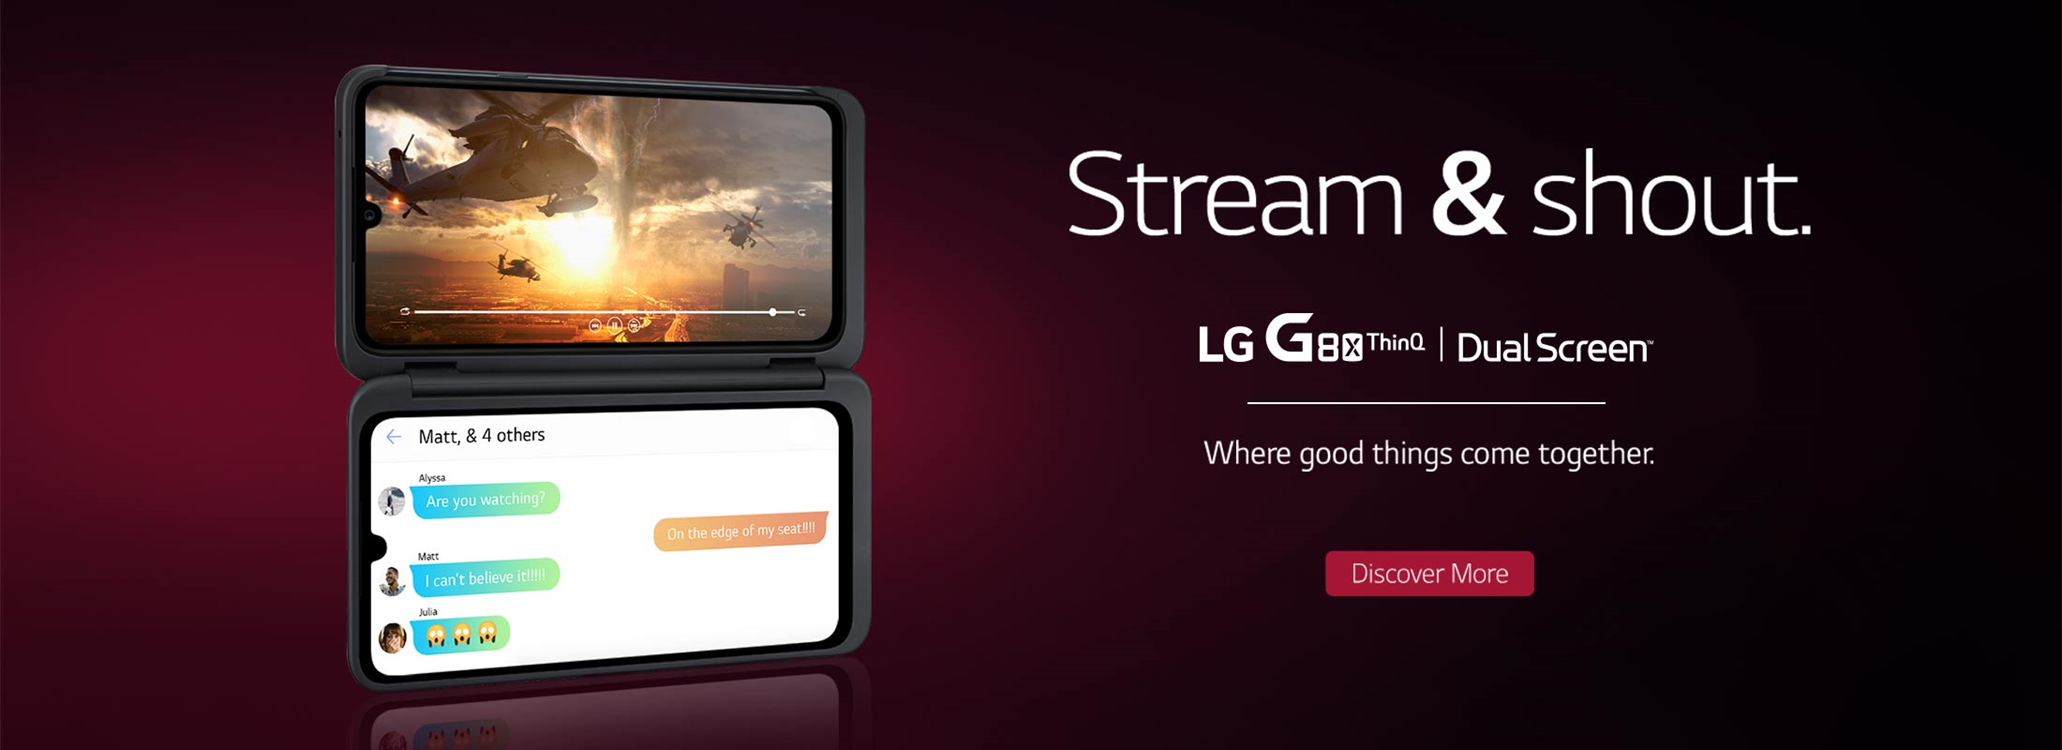 LG G8x phone with dual screen, video streaming on one and messaging on other.